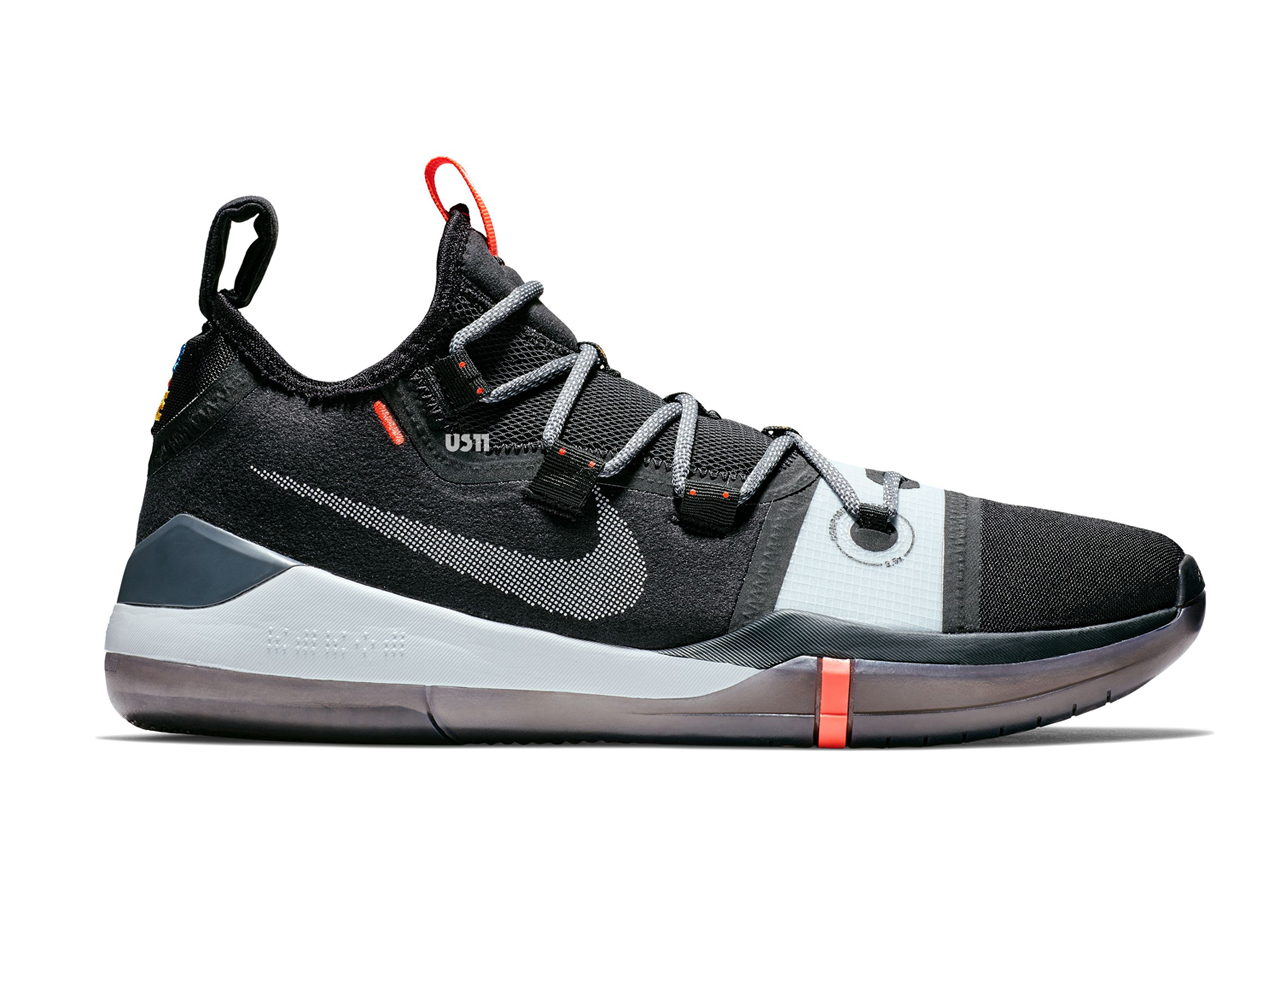 dd47f2172b9d 8411c ba93a  new zealand nike kobe ad exodus and stay tuned for official  information once its available.